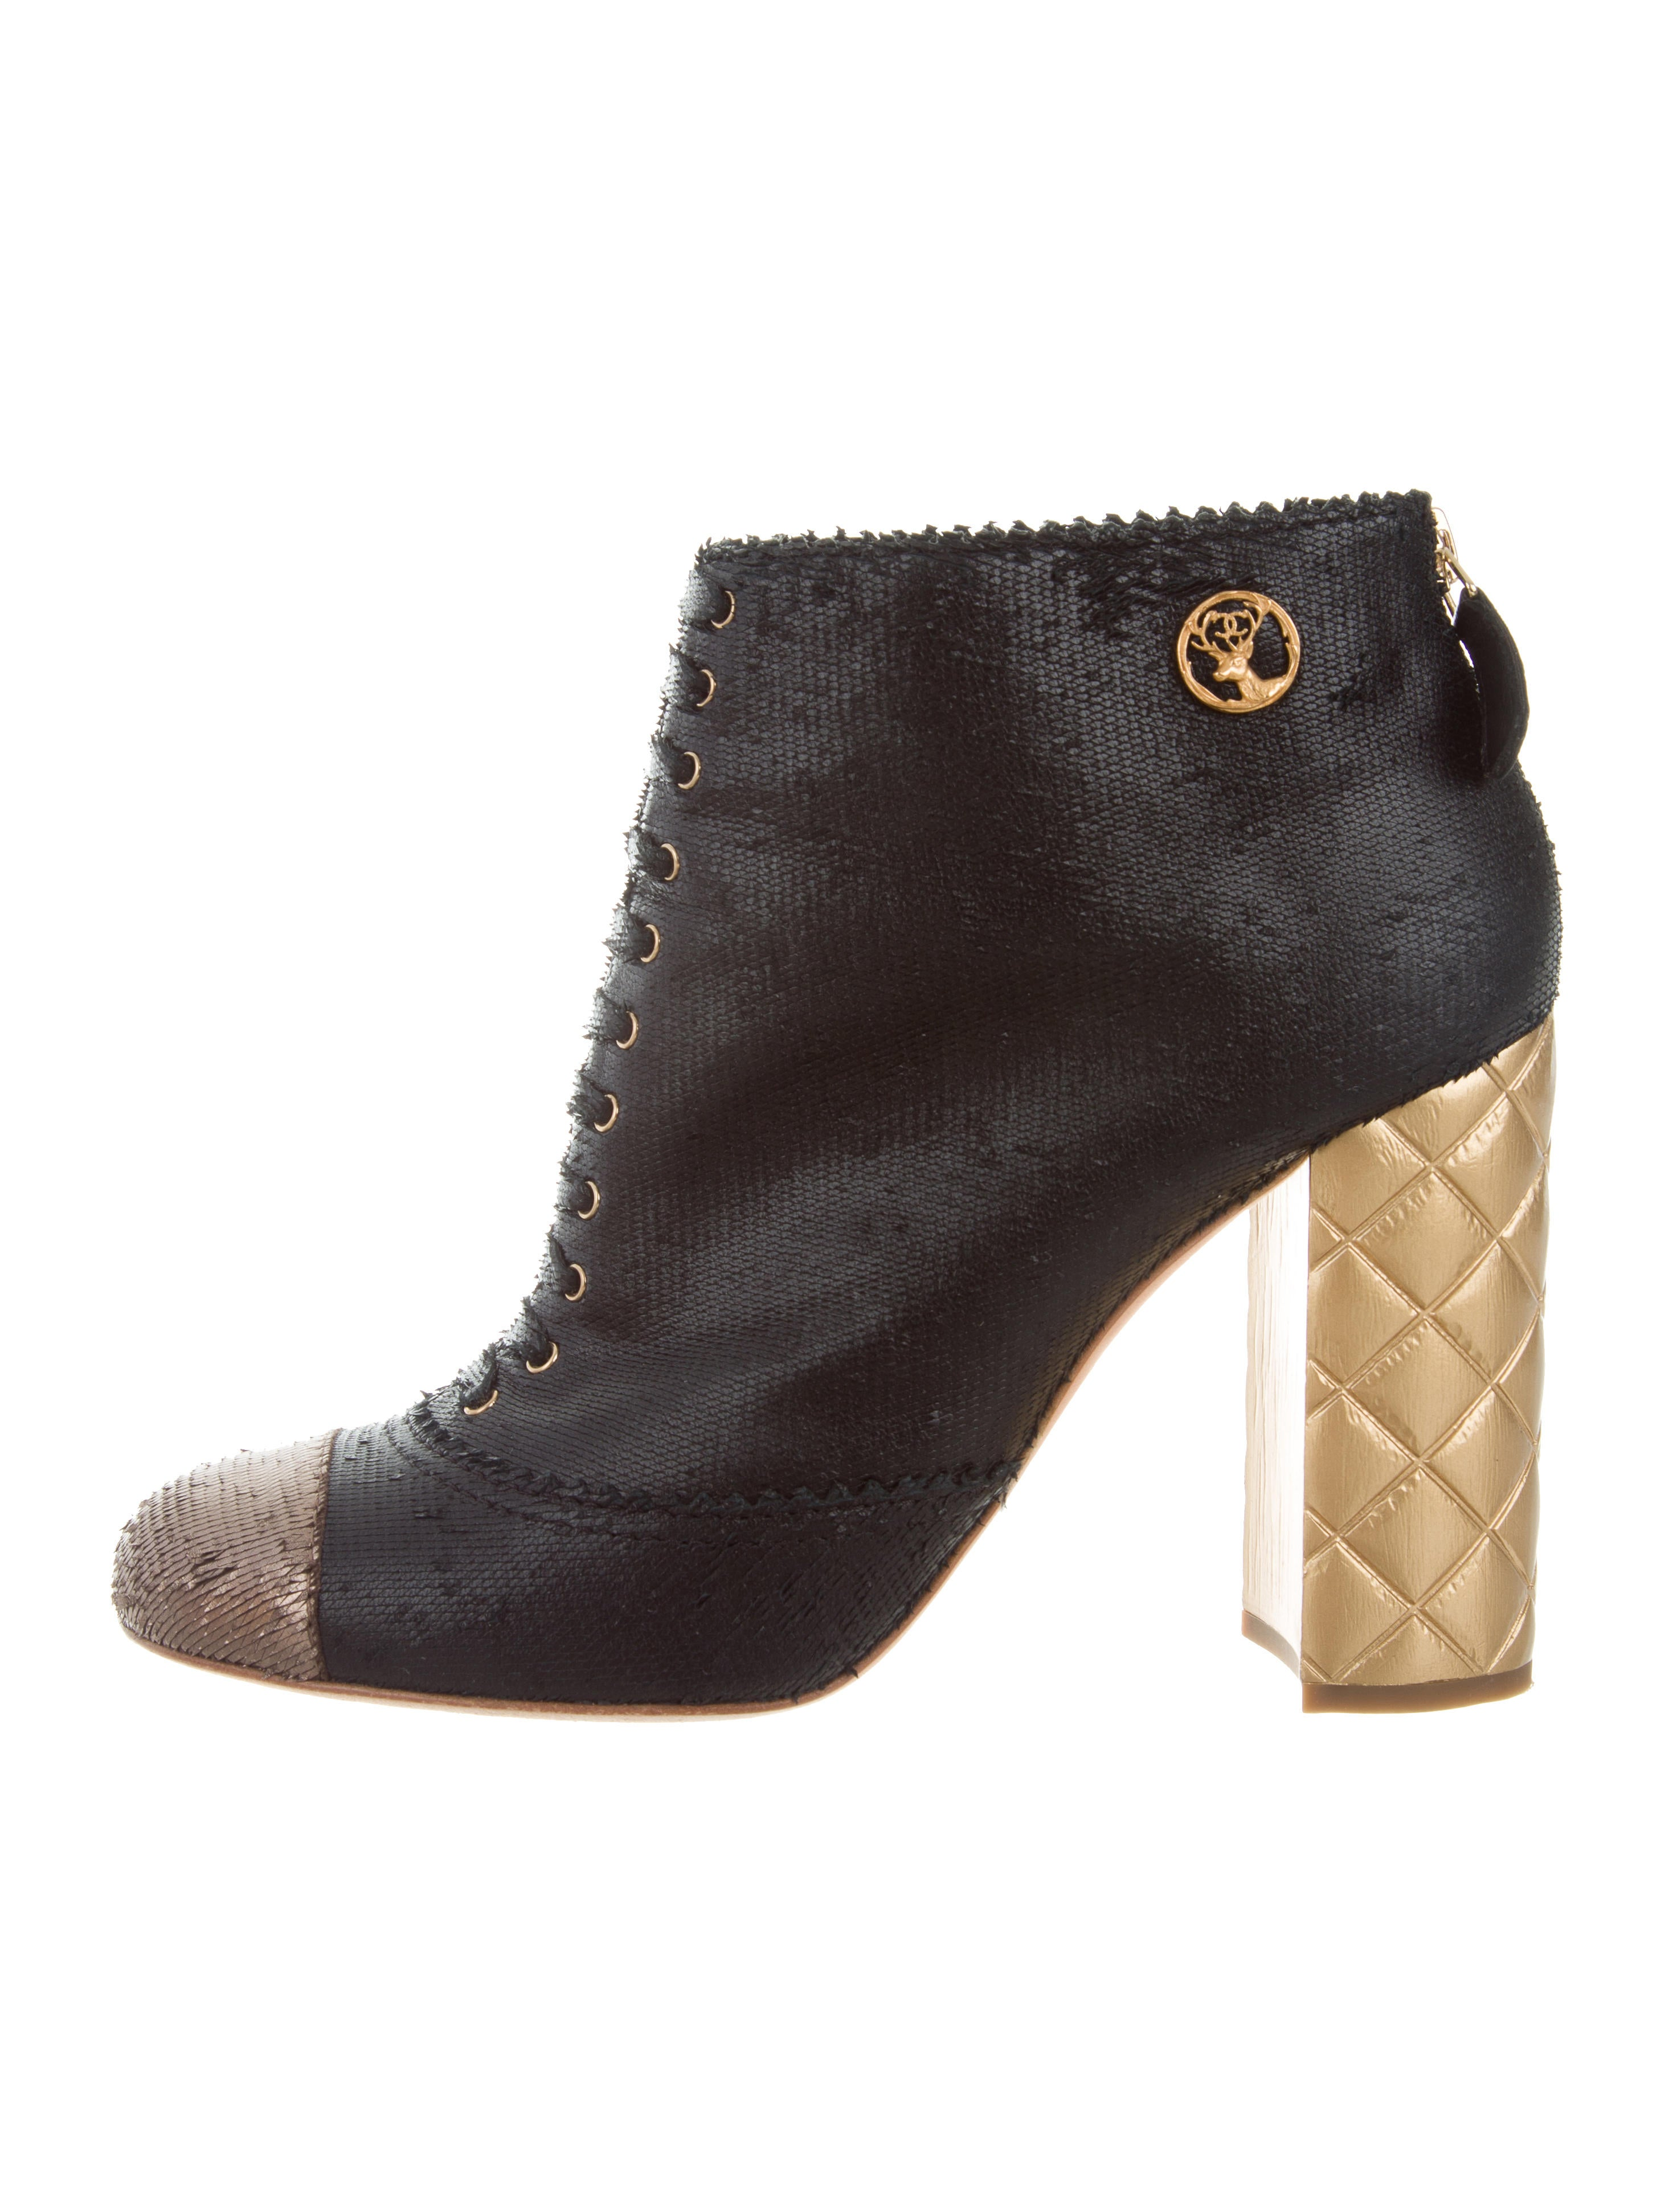 bf10b091126c Chanel 2015 Paris-Salzburg Fantasy Ankle Boots - Shoes - CHA187503 ...